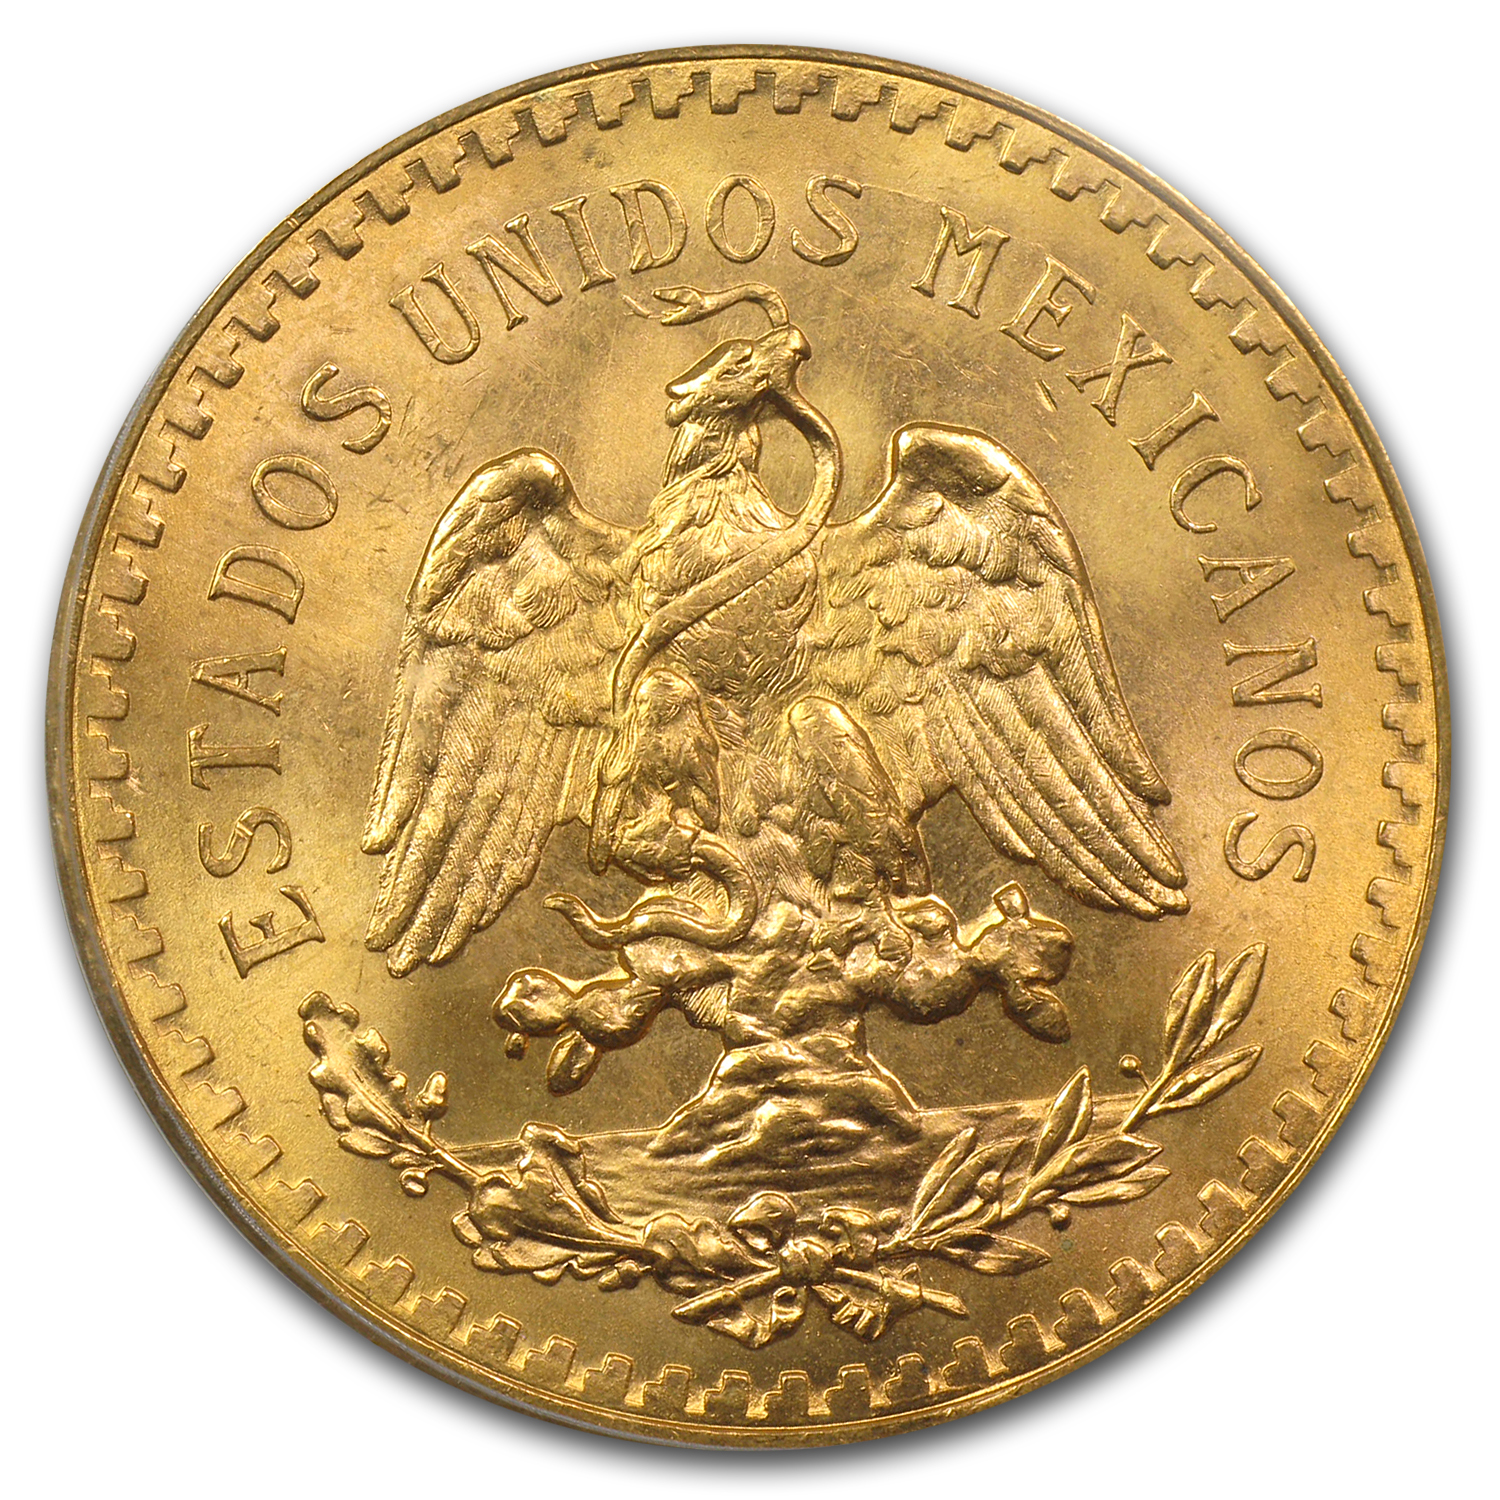 Mexico 1947 50 Pesos Gold Coin - MS-65 PCGS